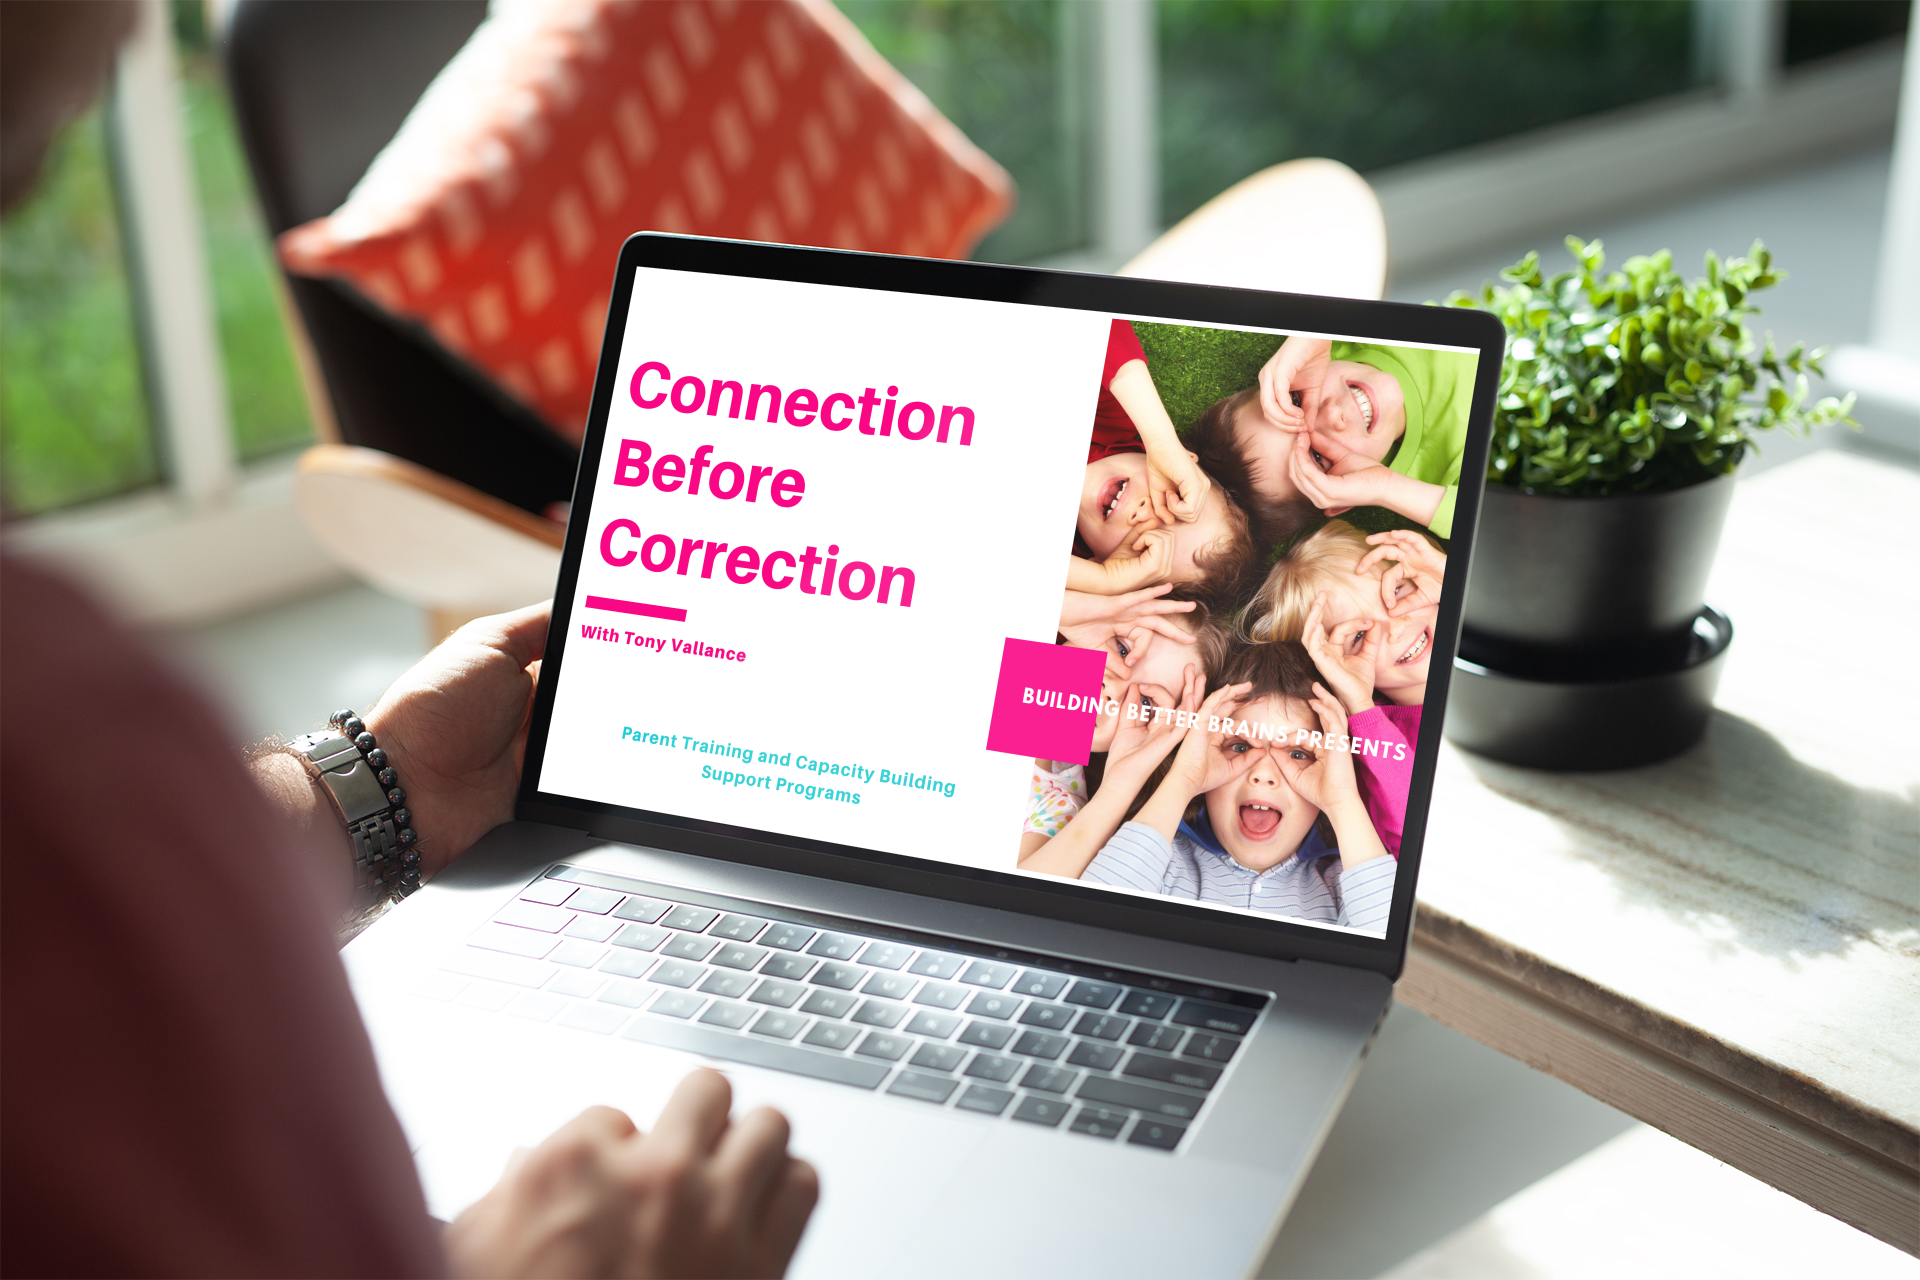 Connection Before Correction Course